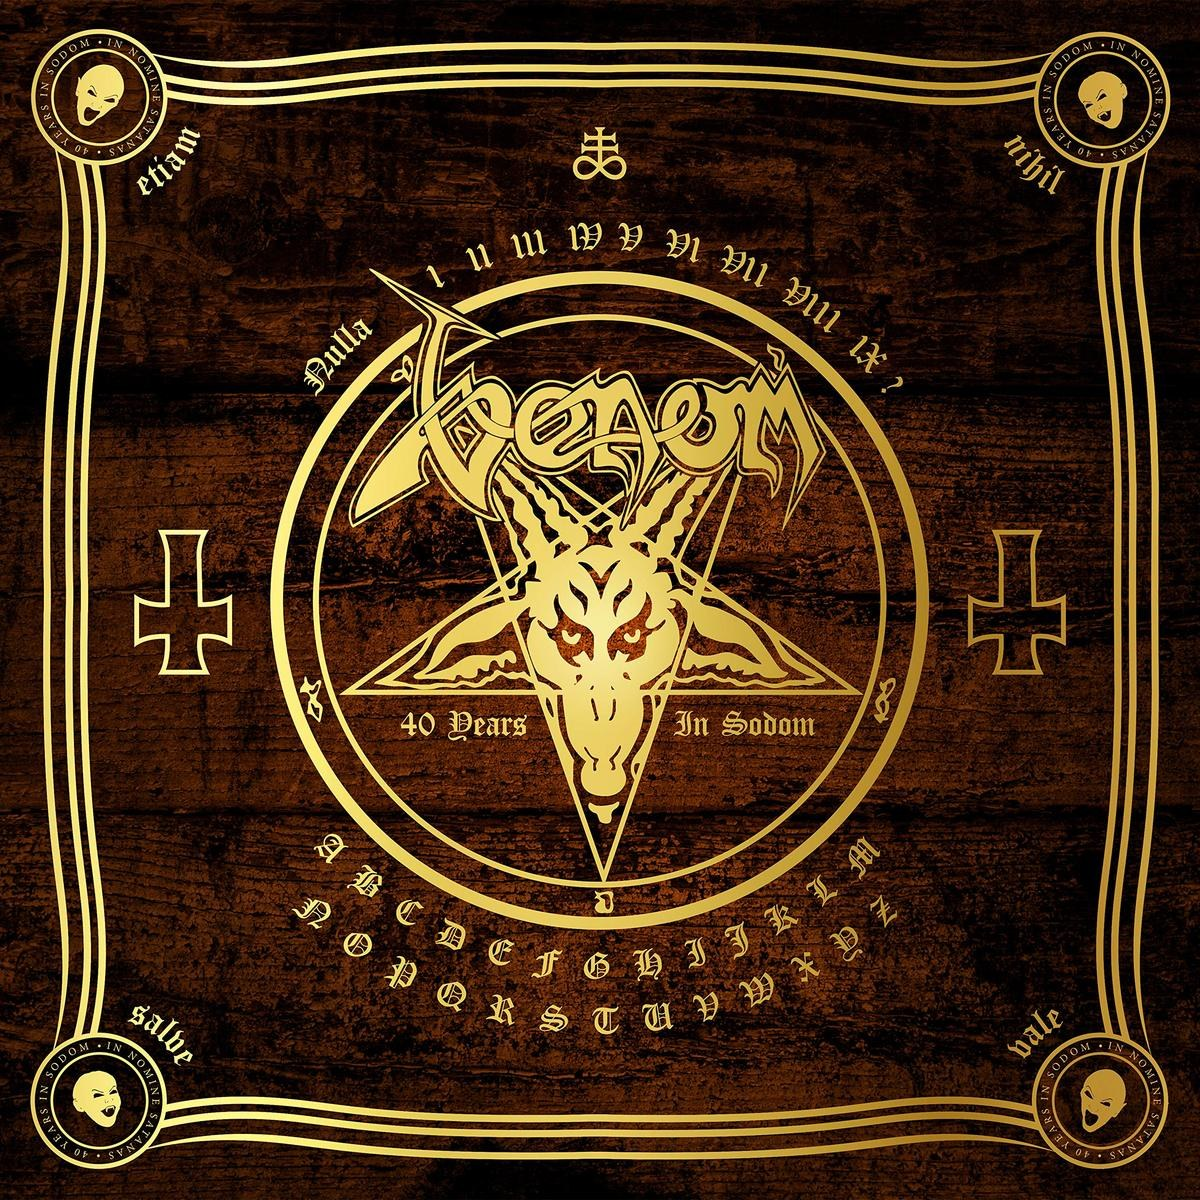 Venom - In Nomine Satanas - The Neat Anthology (40 Years in Sodom)